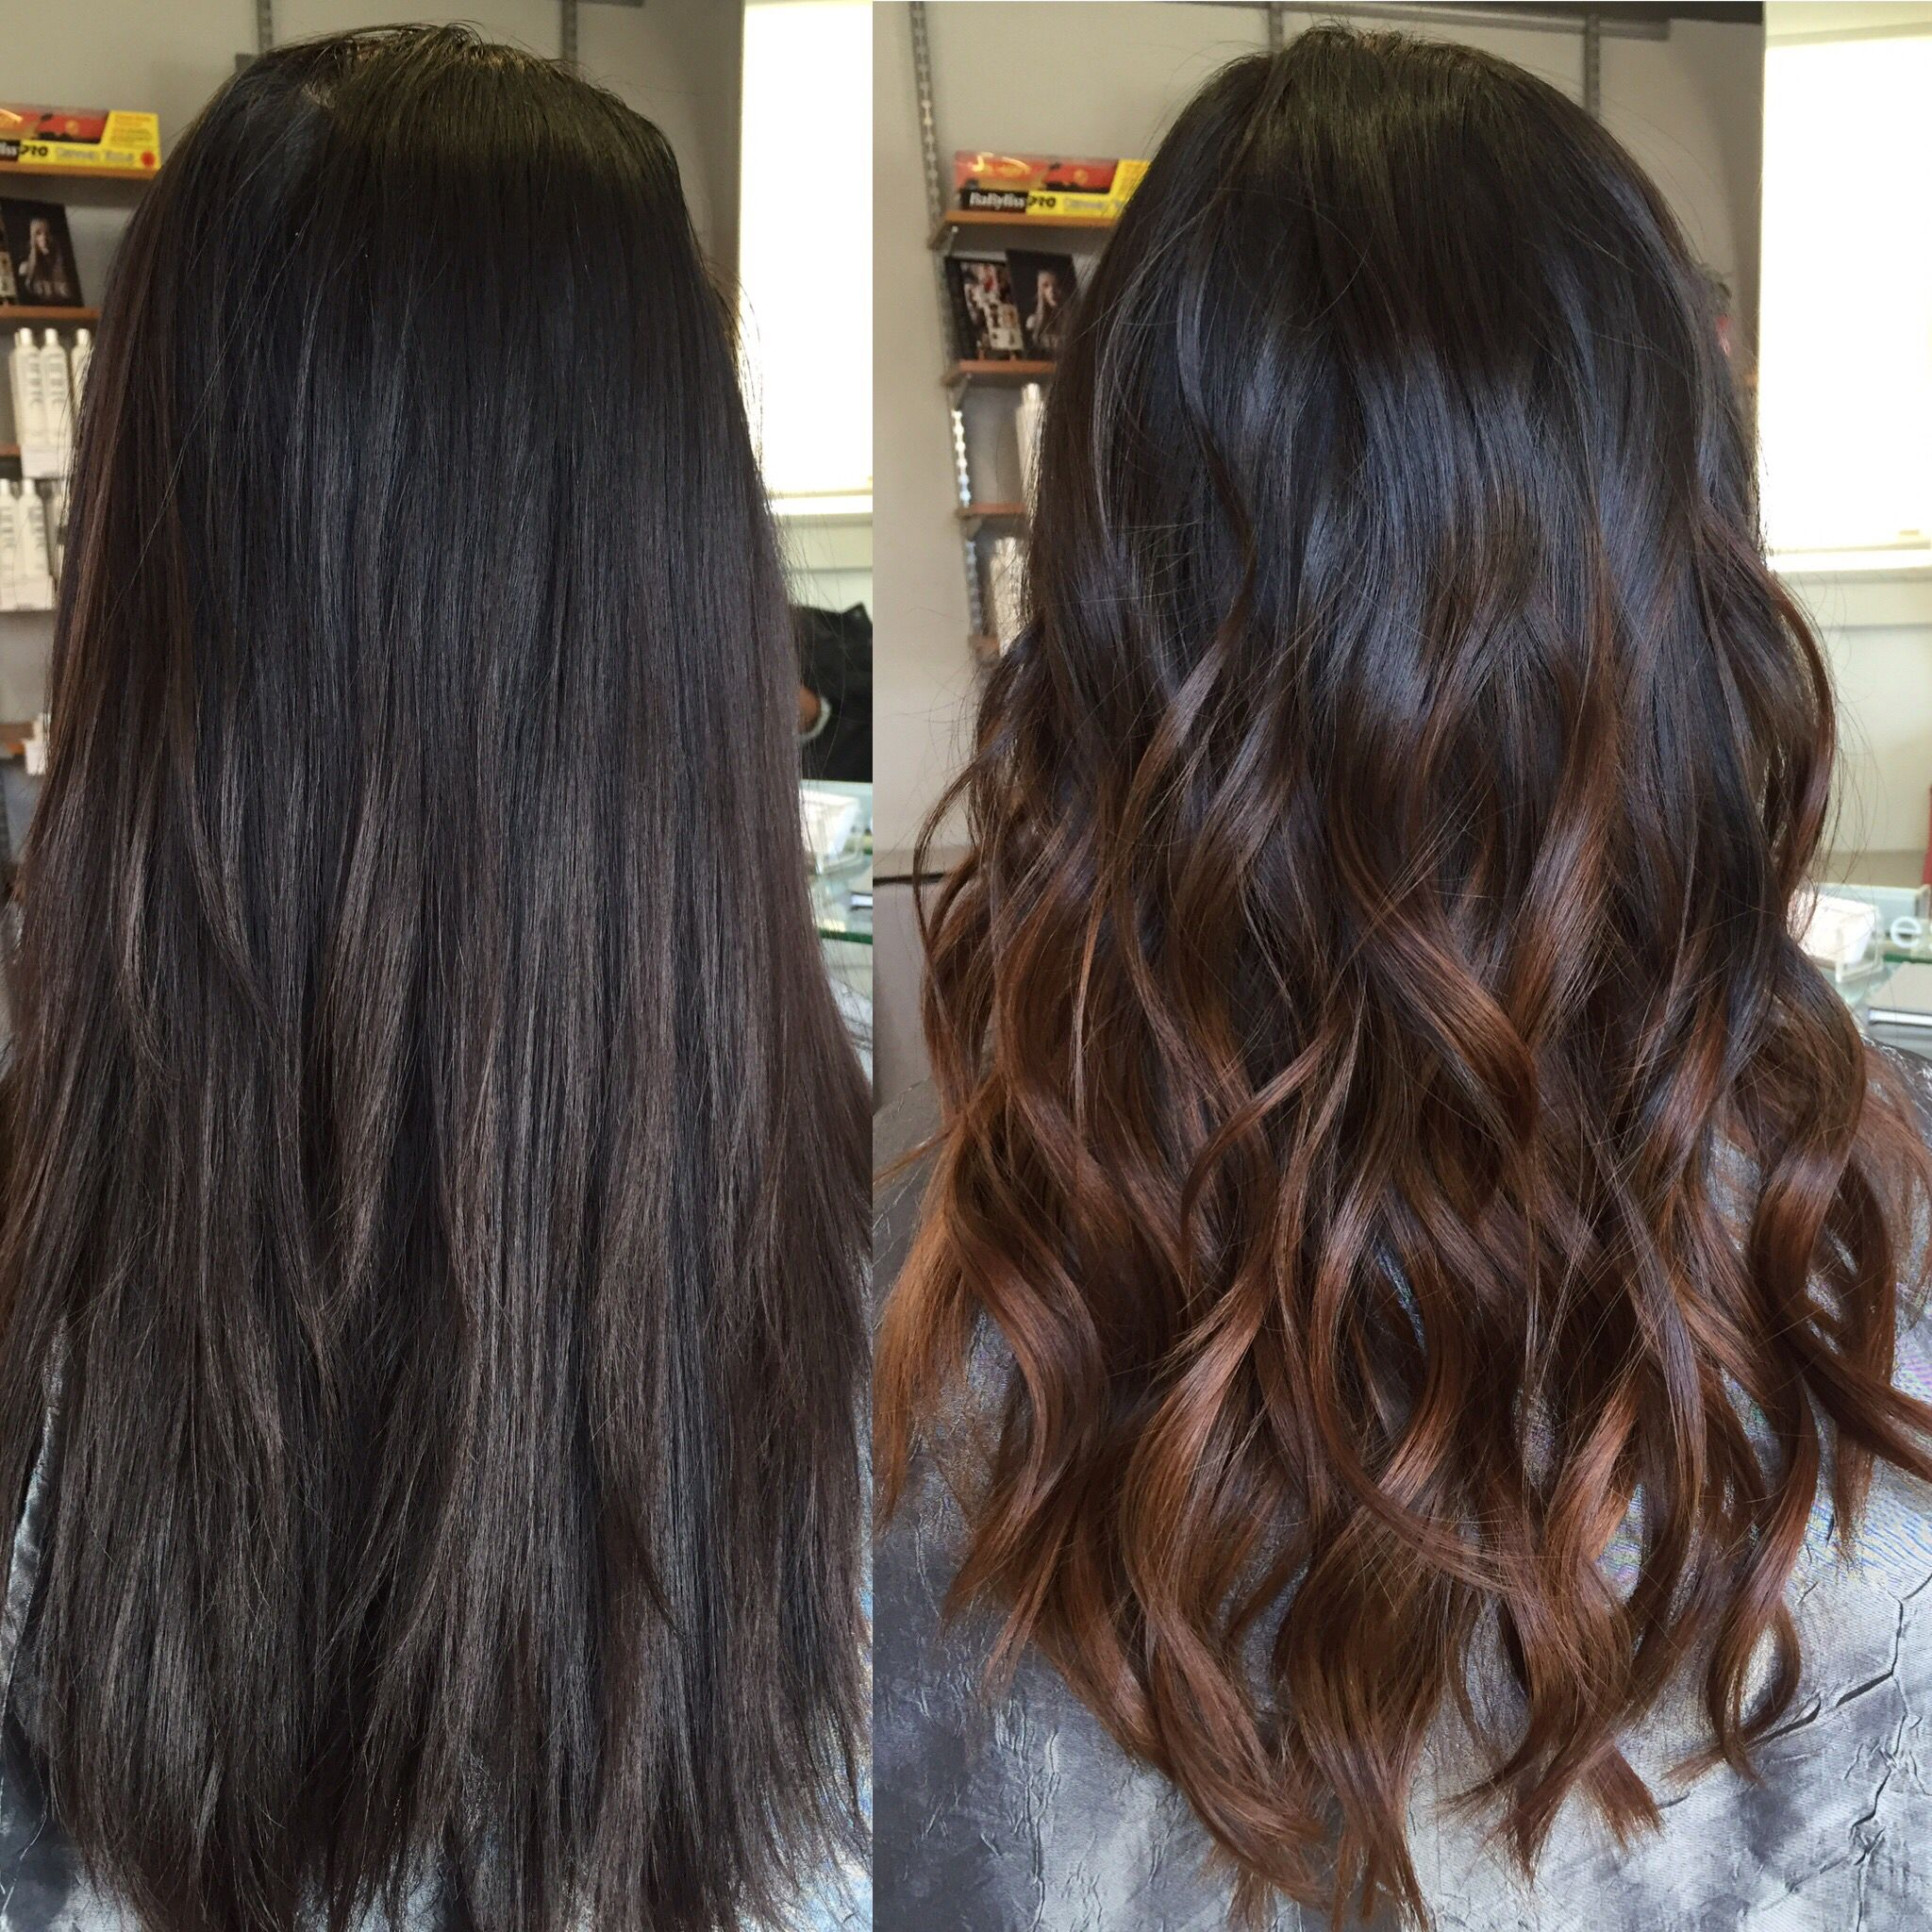 Hair Painting Balayage To Create Soft Subtle Sunkissed Color On My Client Cabelo Cabelo Preto Cabelo Preto Com Luzes